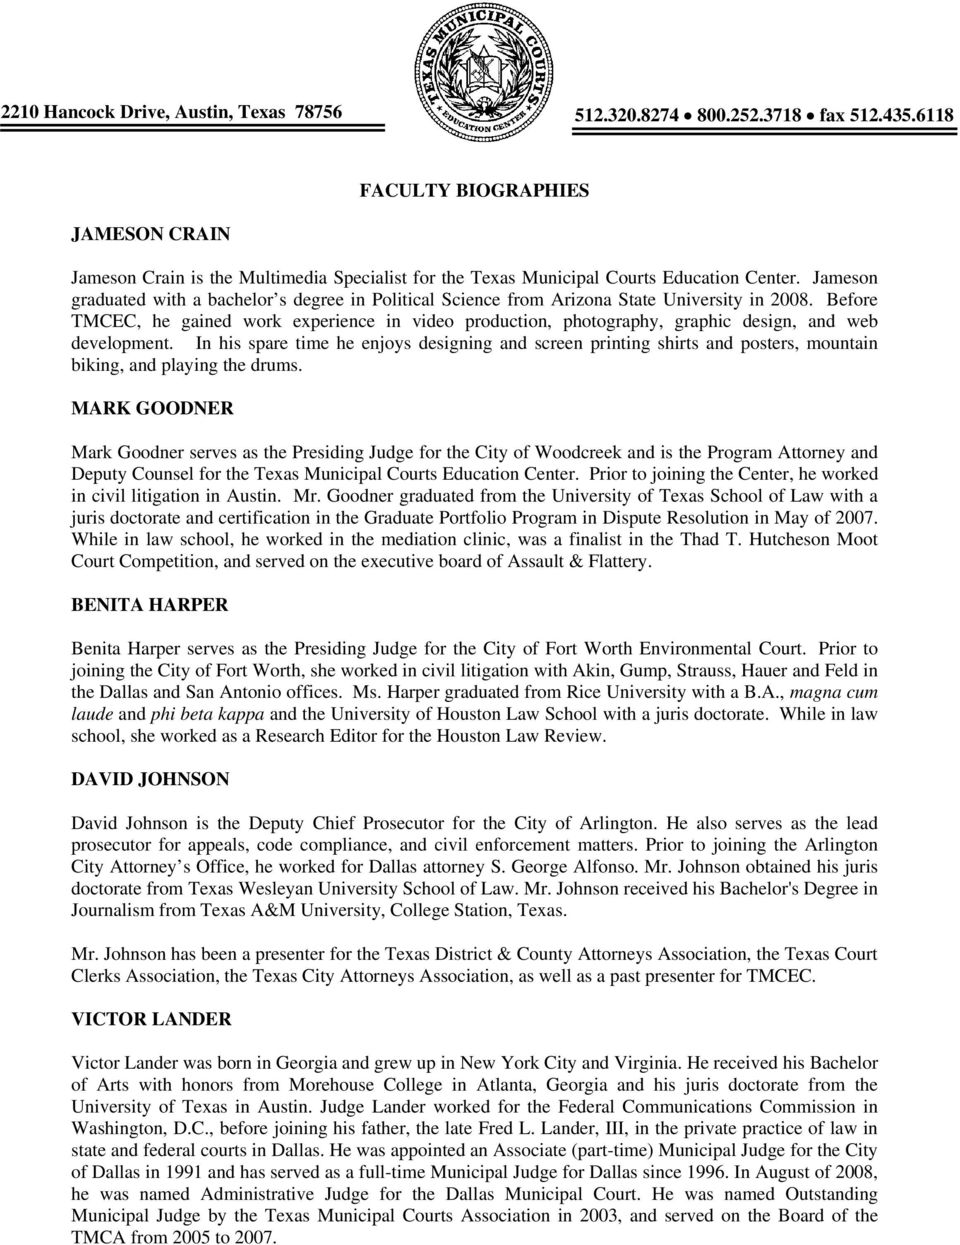 TEXAS MUNICIPAL COURTS EDUCATION CENTER FACULTY ROSTER